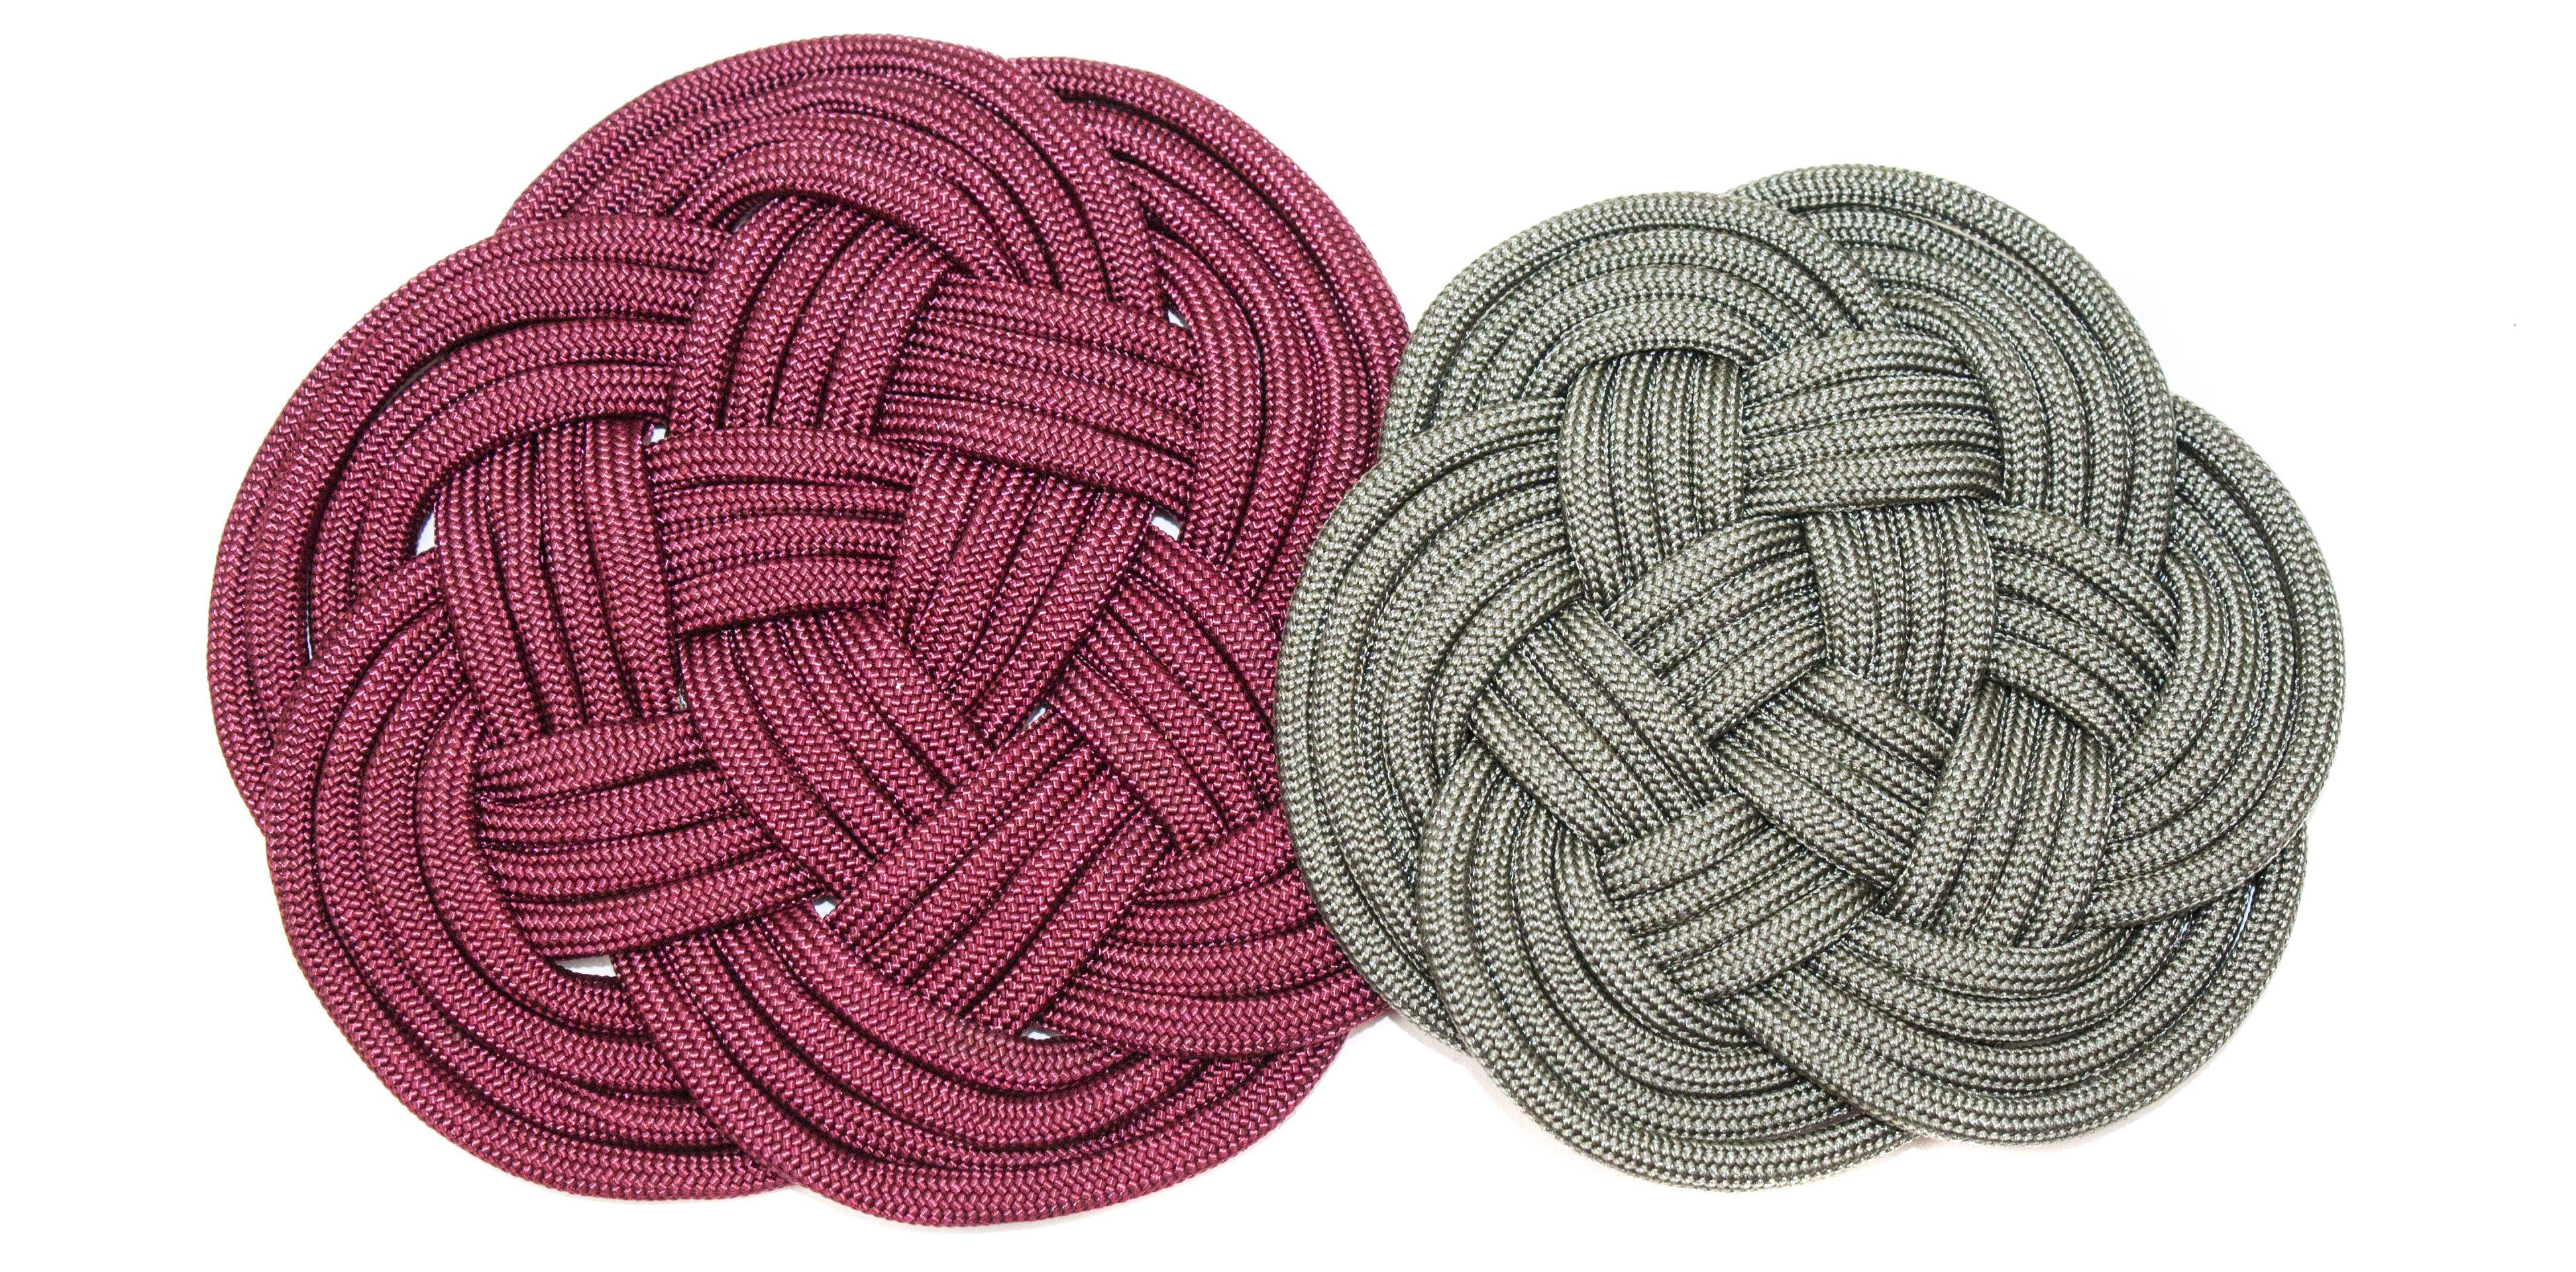 Paracord Turk's Head Coaster